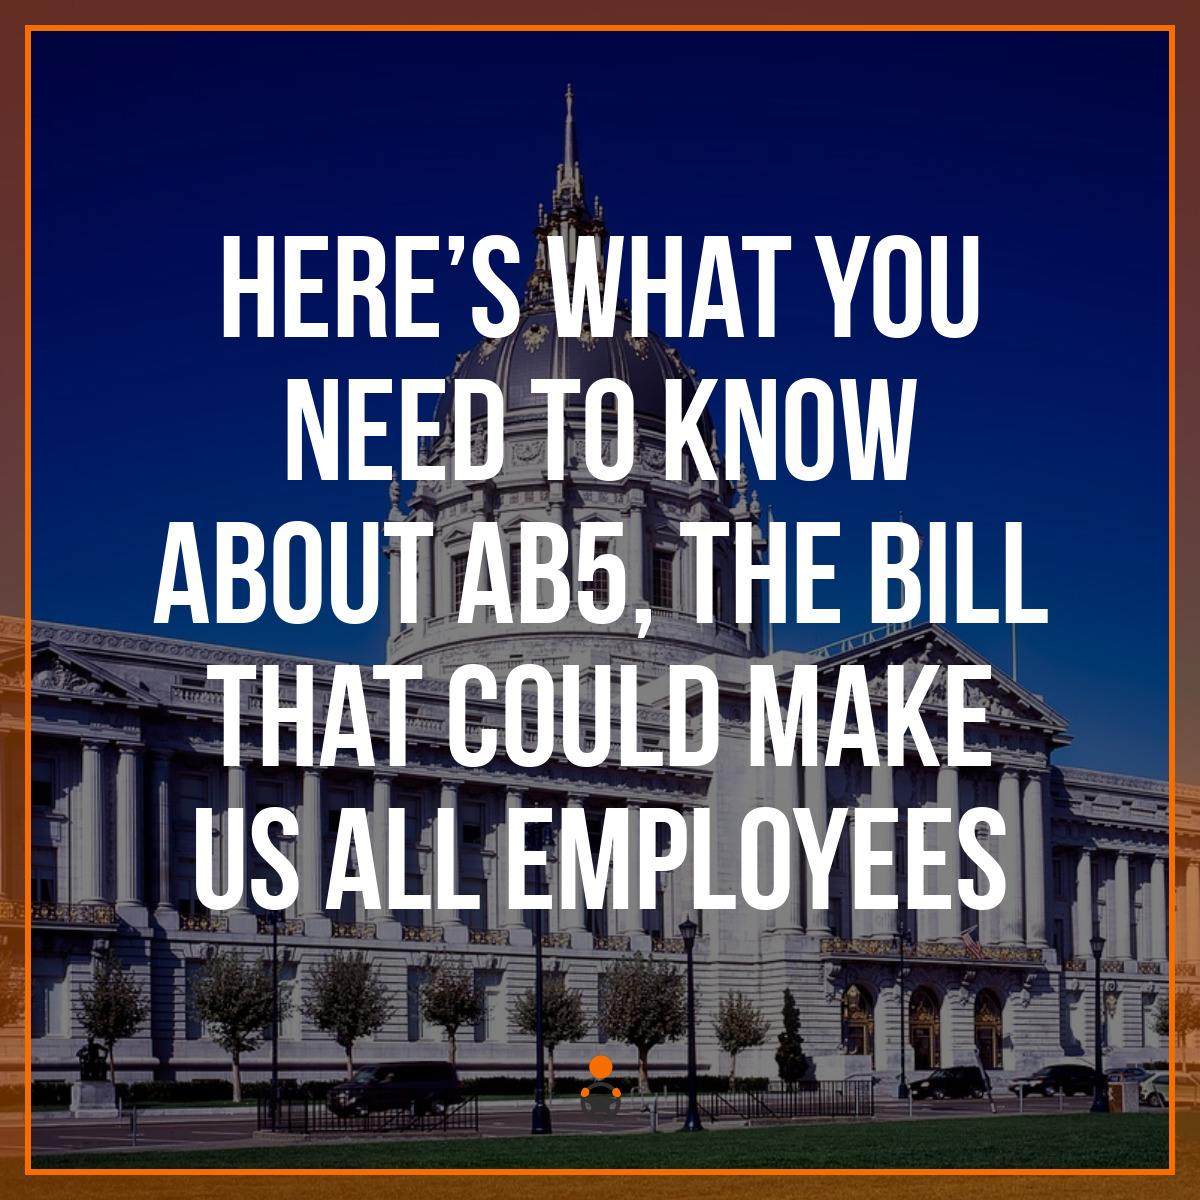 Could AB5 Bring the Rideshare industry to its knees?